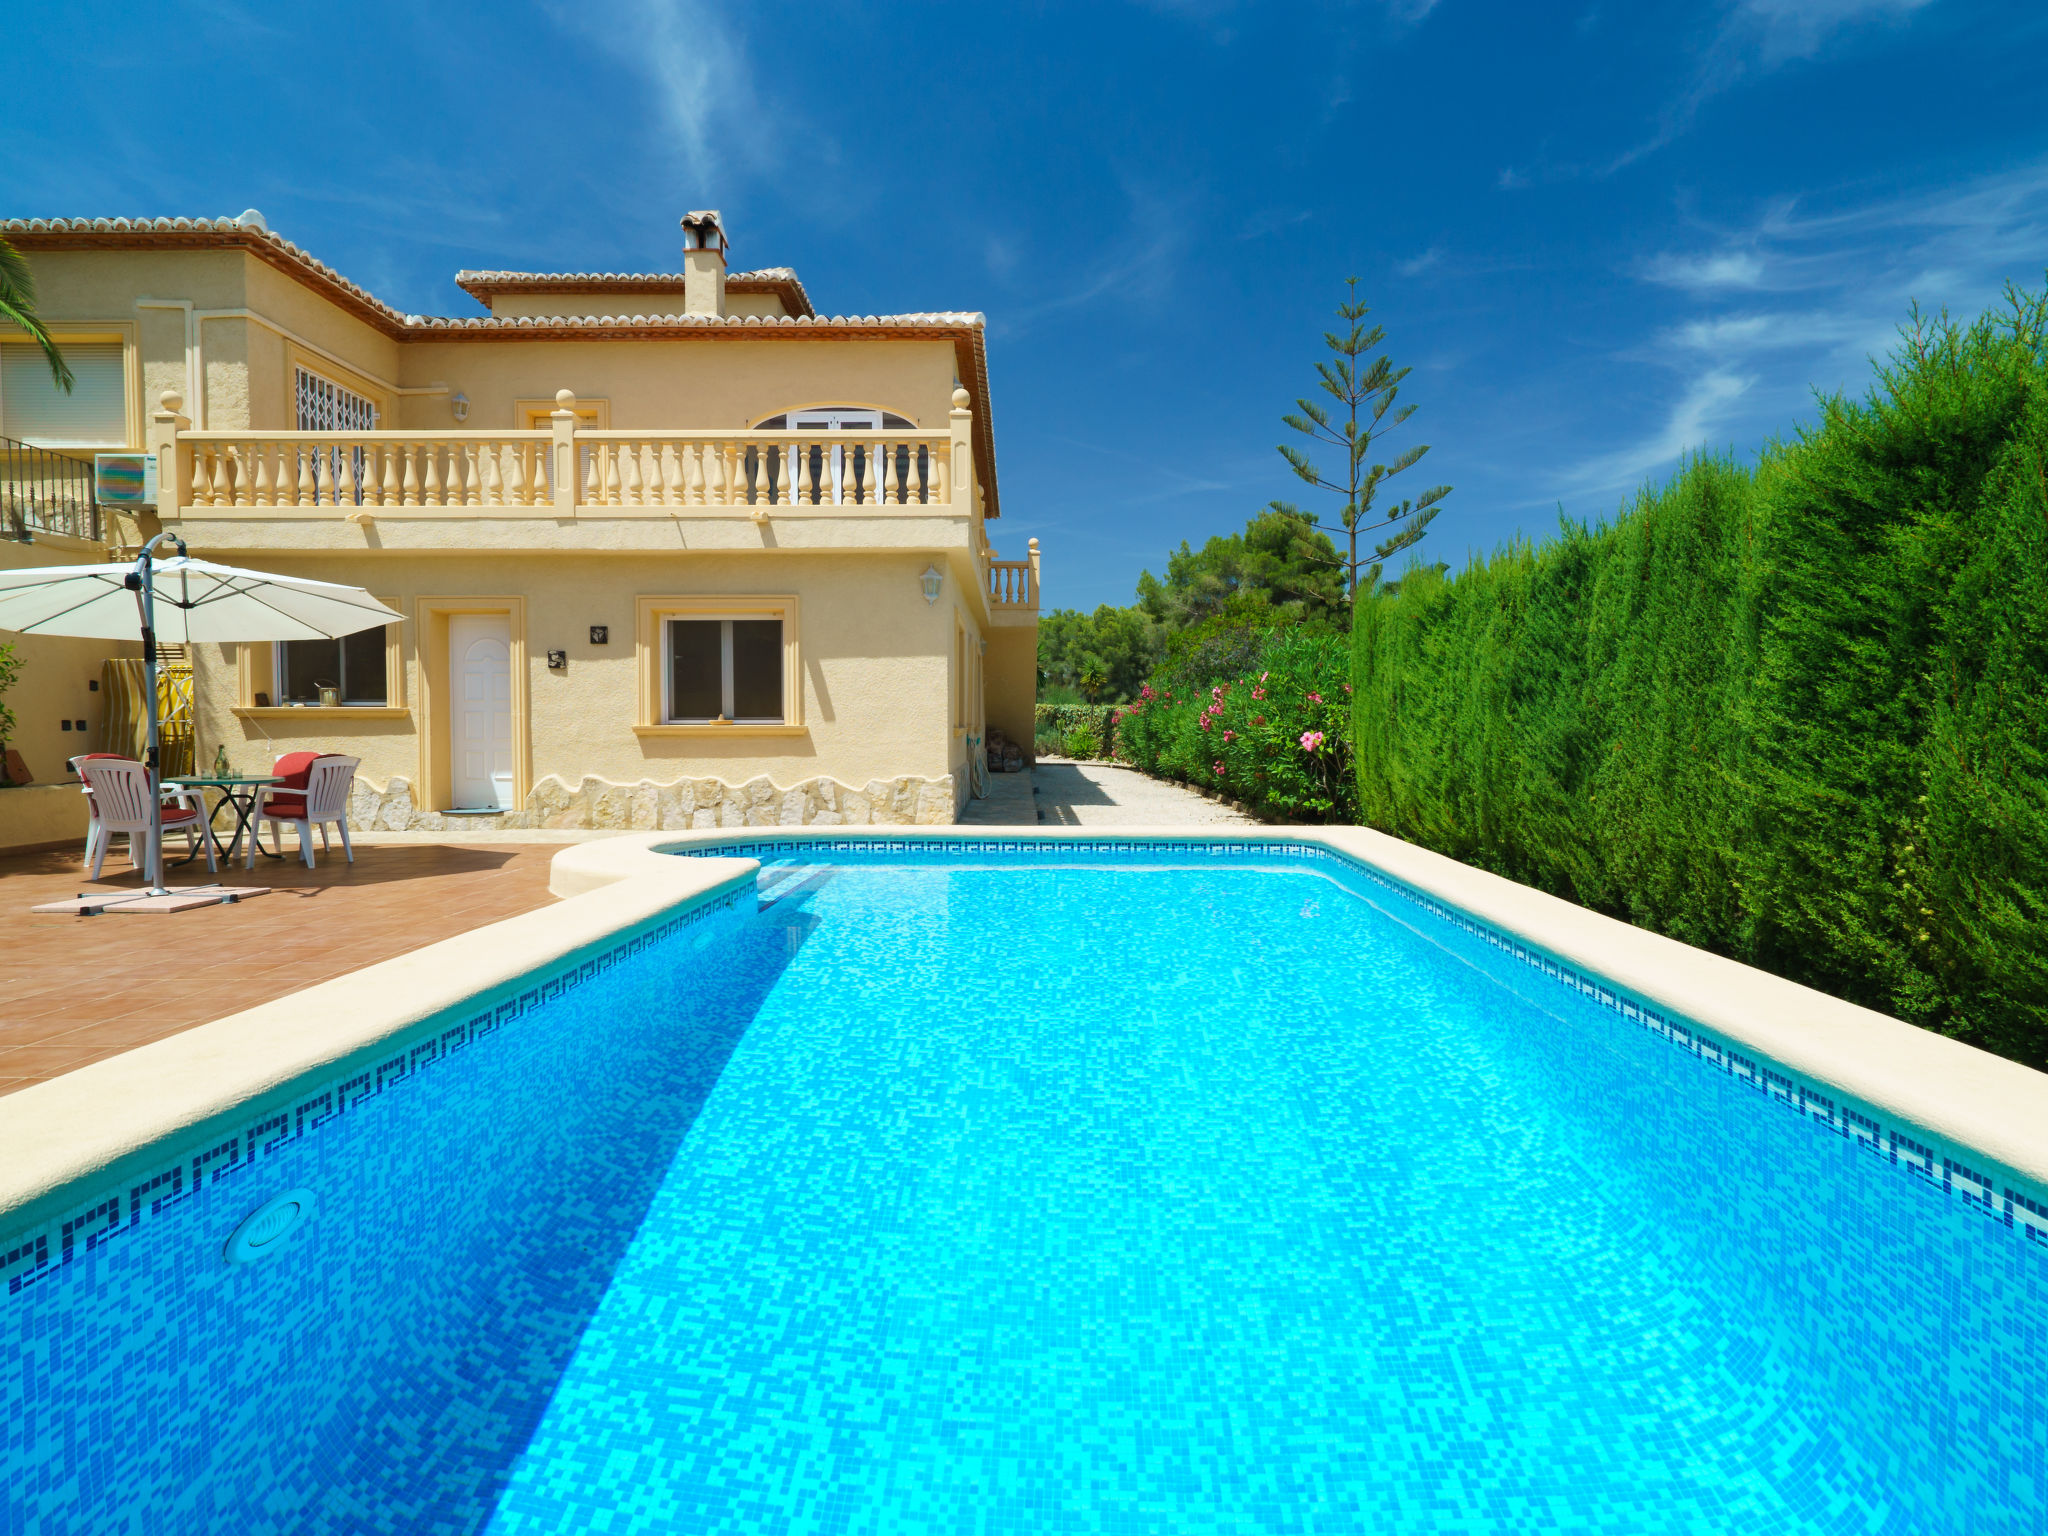 Villa Major,Javea,Costa Blanca #1